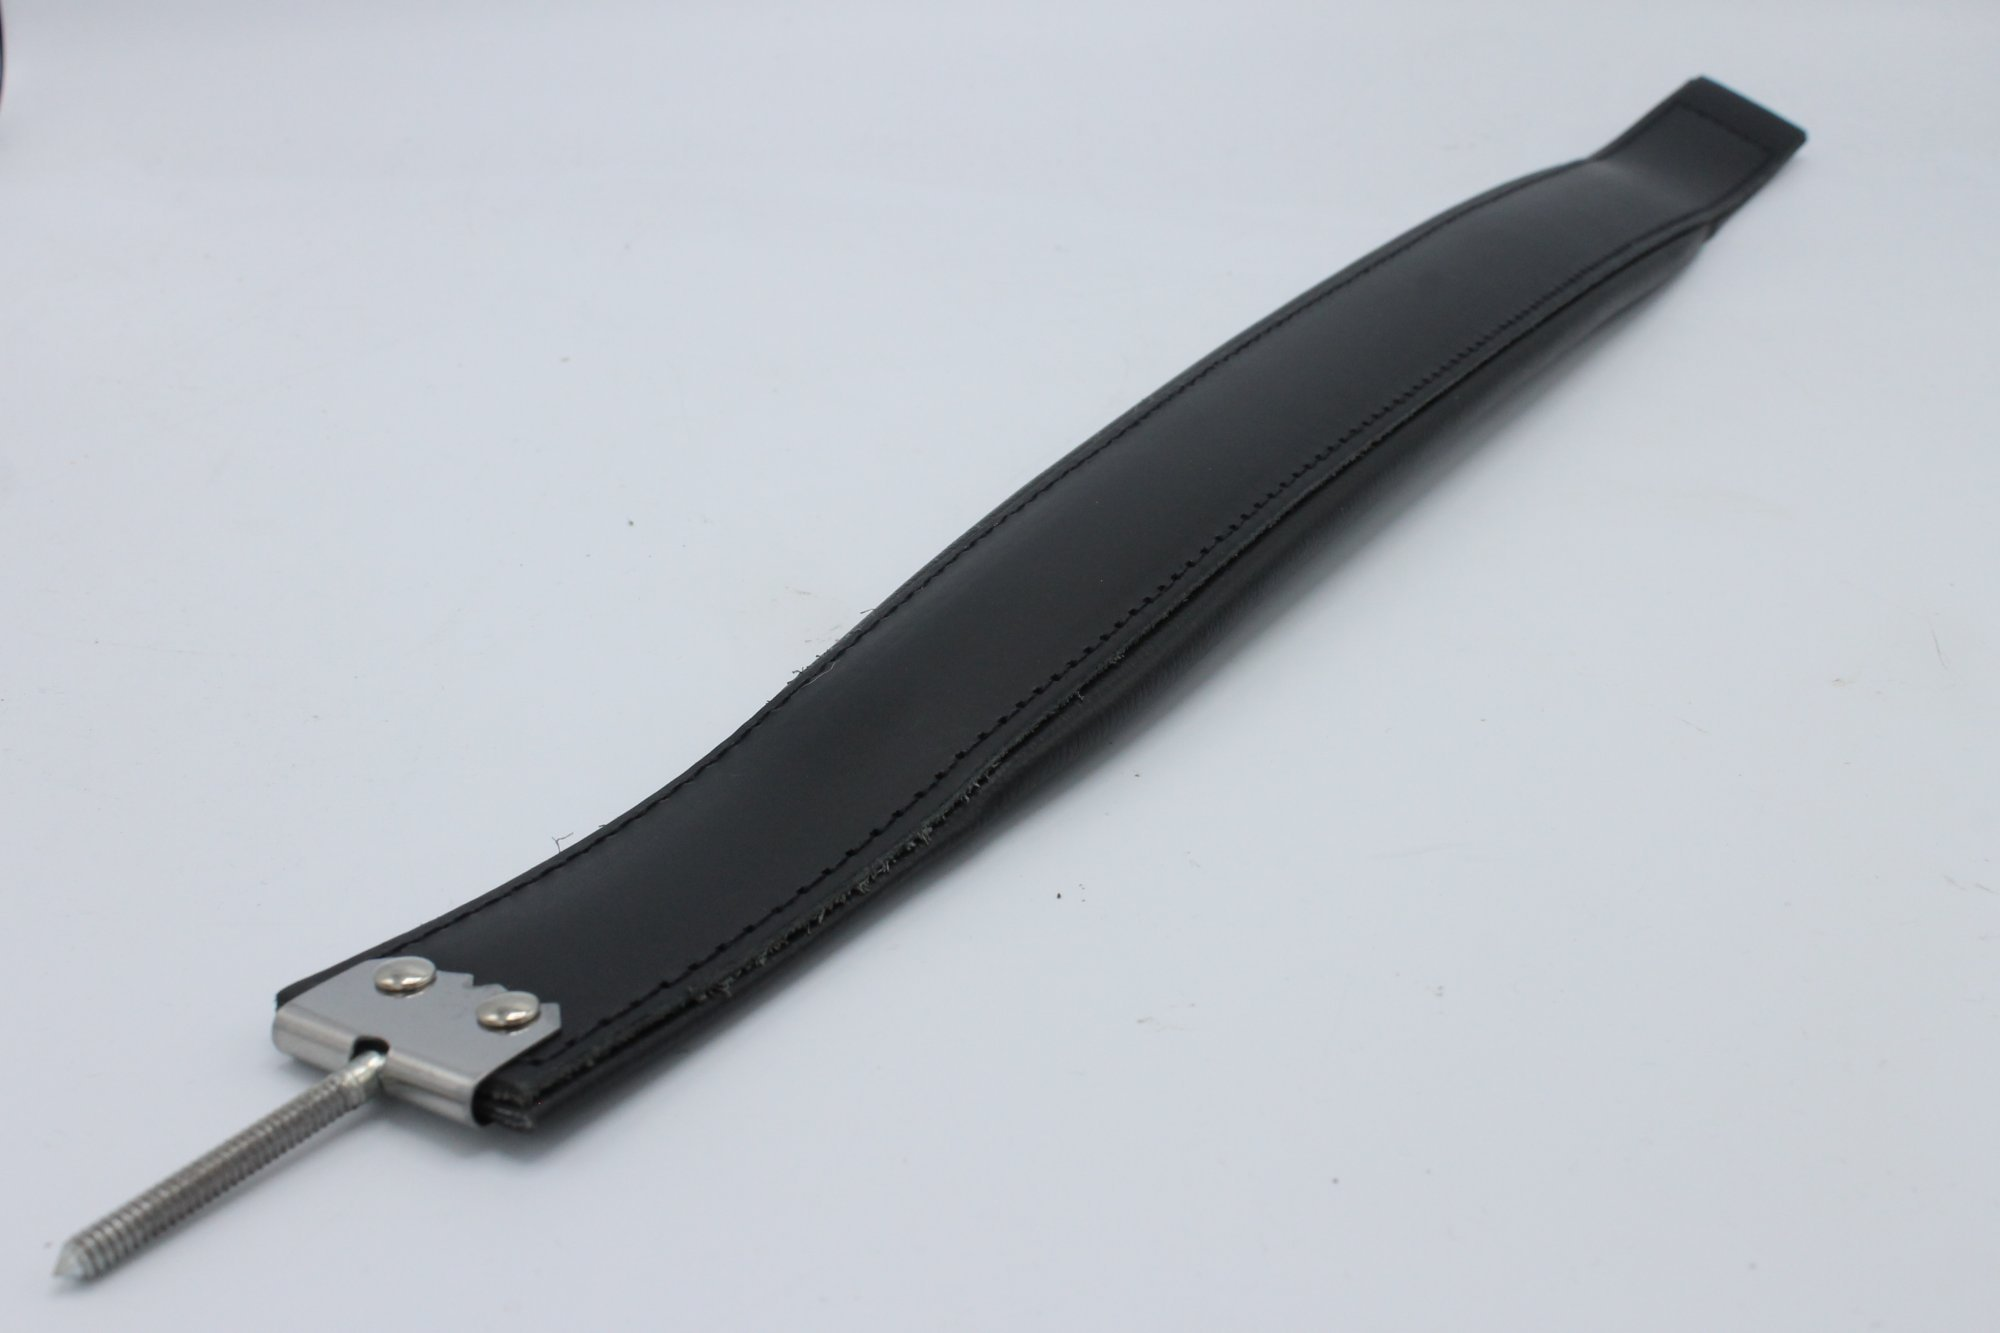 New Black Leather Fuselli Accordion Bass Hand Strap Width (2in/5cm) Length (17.75in/45cm)